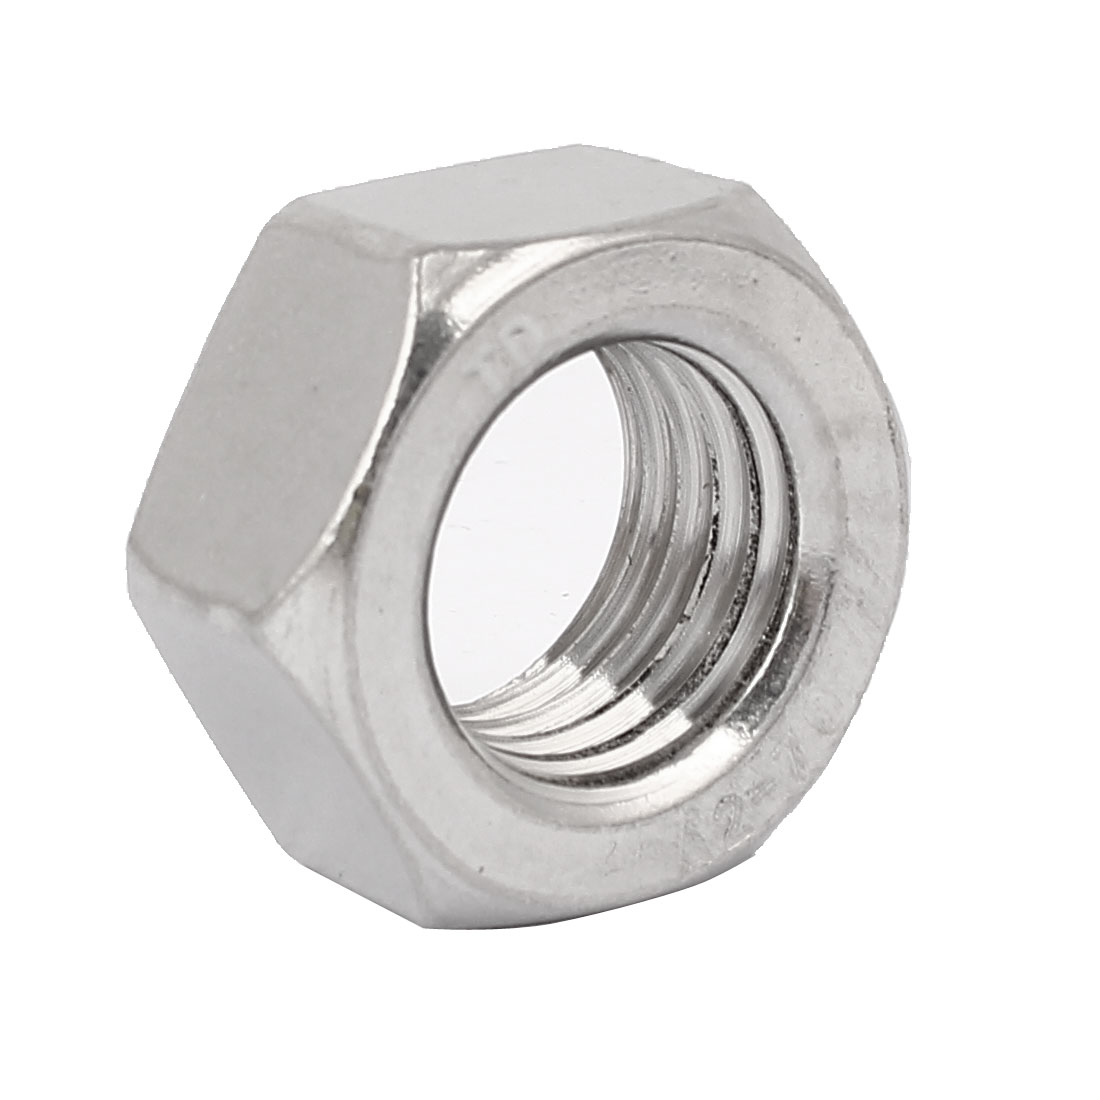 M27 Thread Dia 304 Stainless Steel Hex Nut Screw Cap Fastener Silver Tone